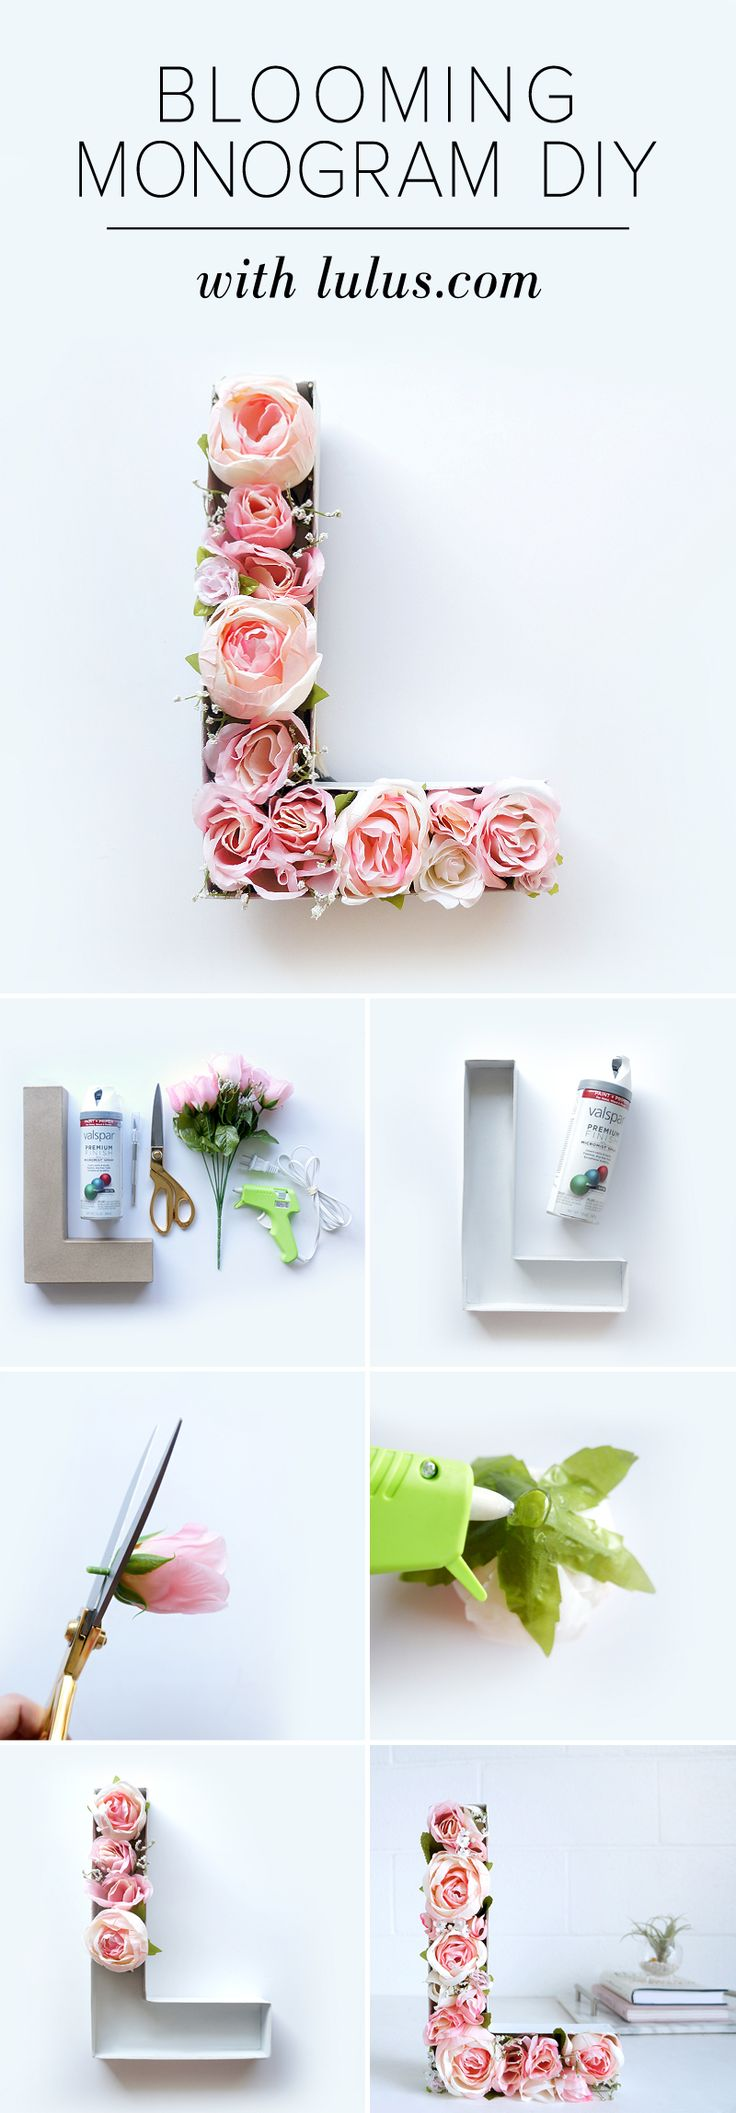 DIY Projects: Blooming Monogram DIY